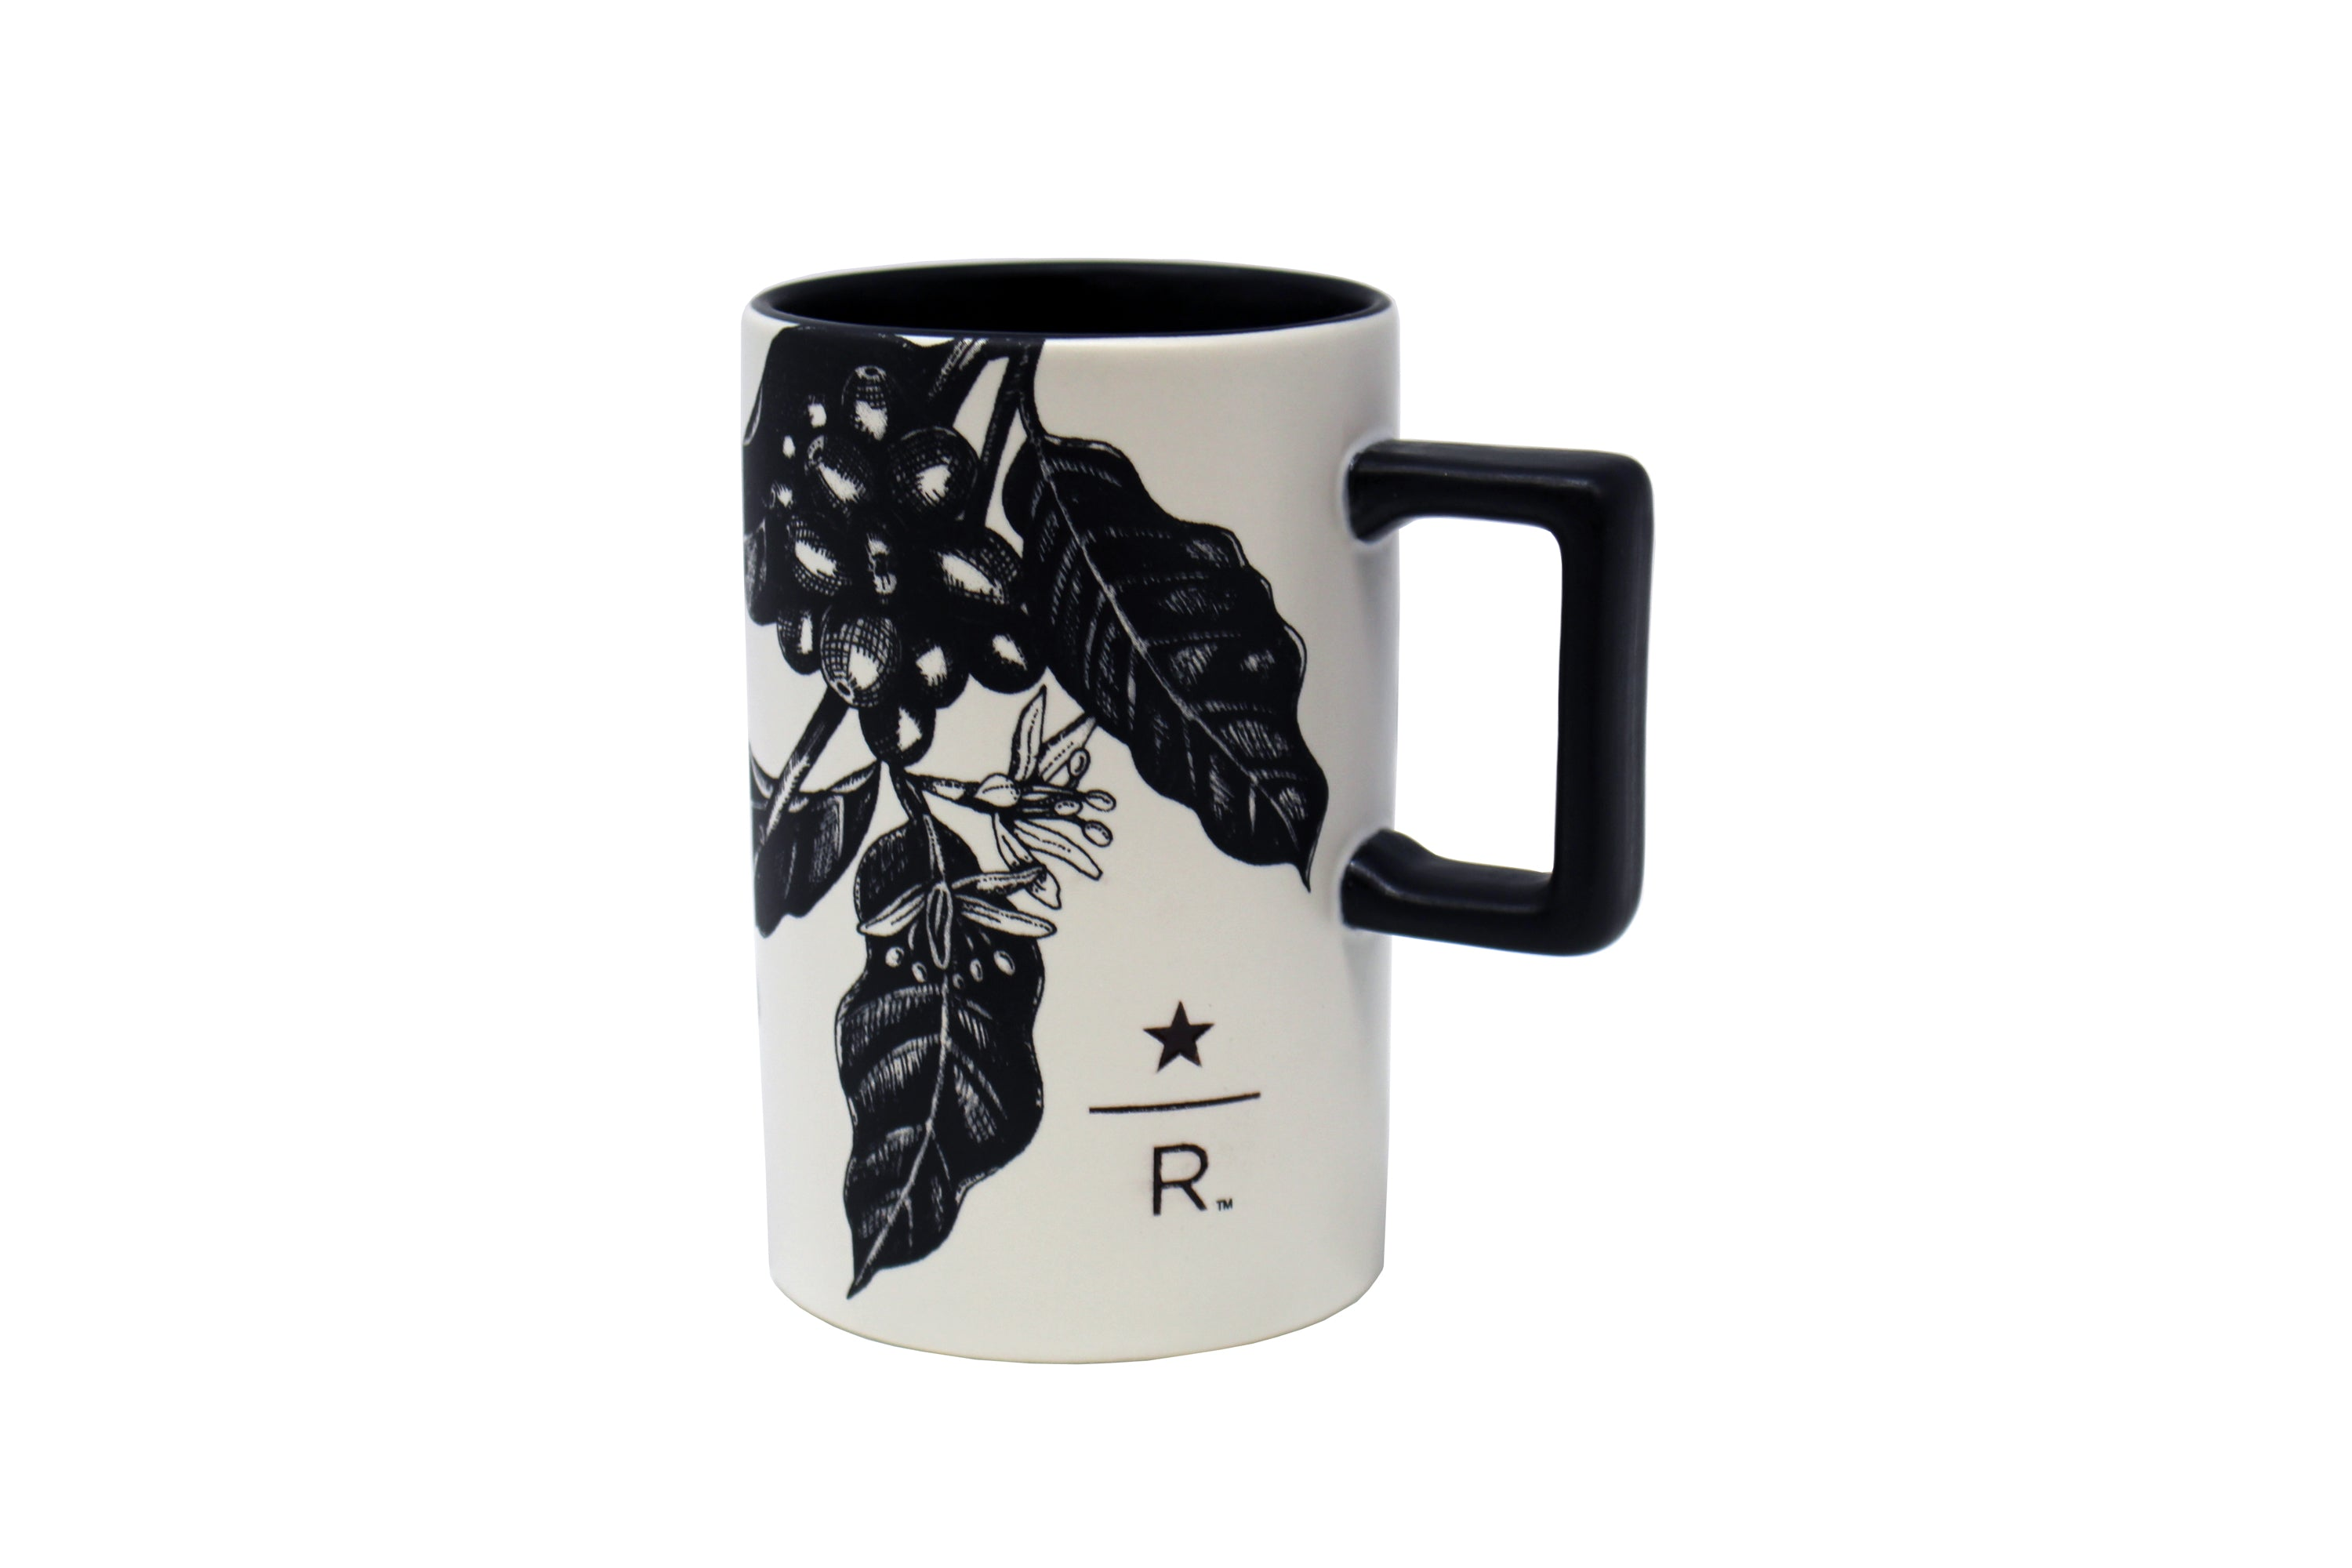 Starbucks Reserve Black Outline Leaves Print Mug, 12 Oz